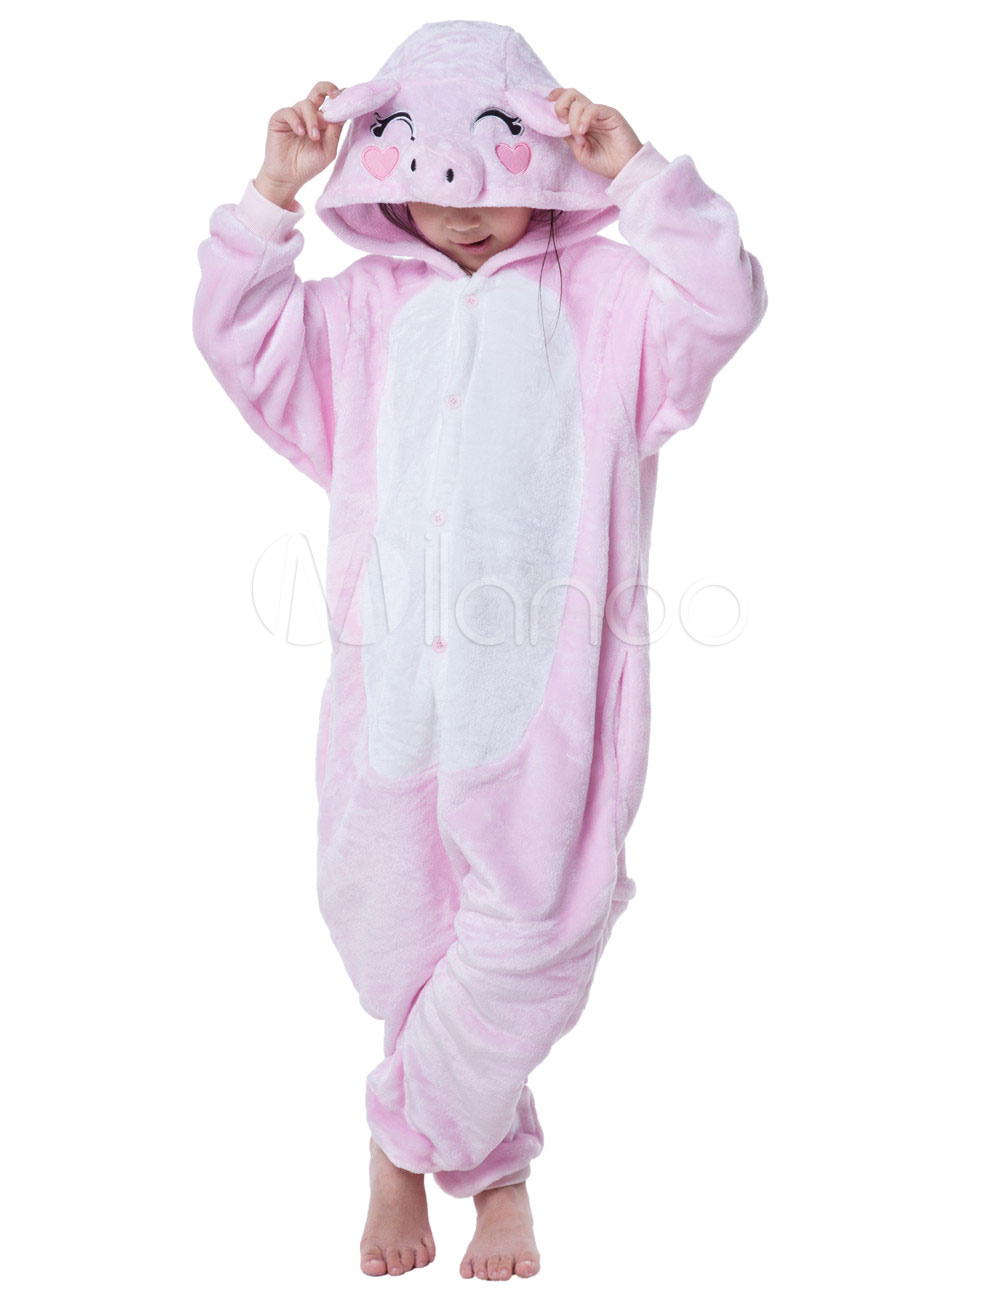 Buy Kigurumi Pajama Pig Onesie For Kids Pink Synthetic Jumpsuit Mascot Costume Halloween for $18.89 in Milanoo store